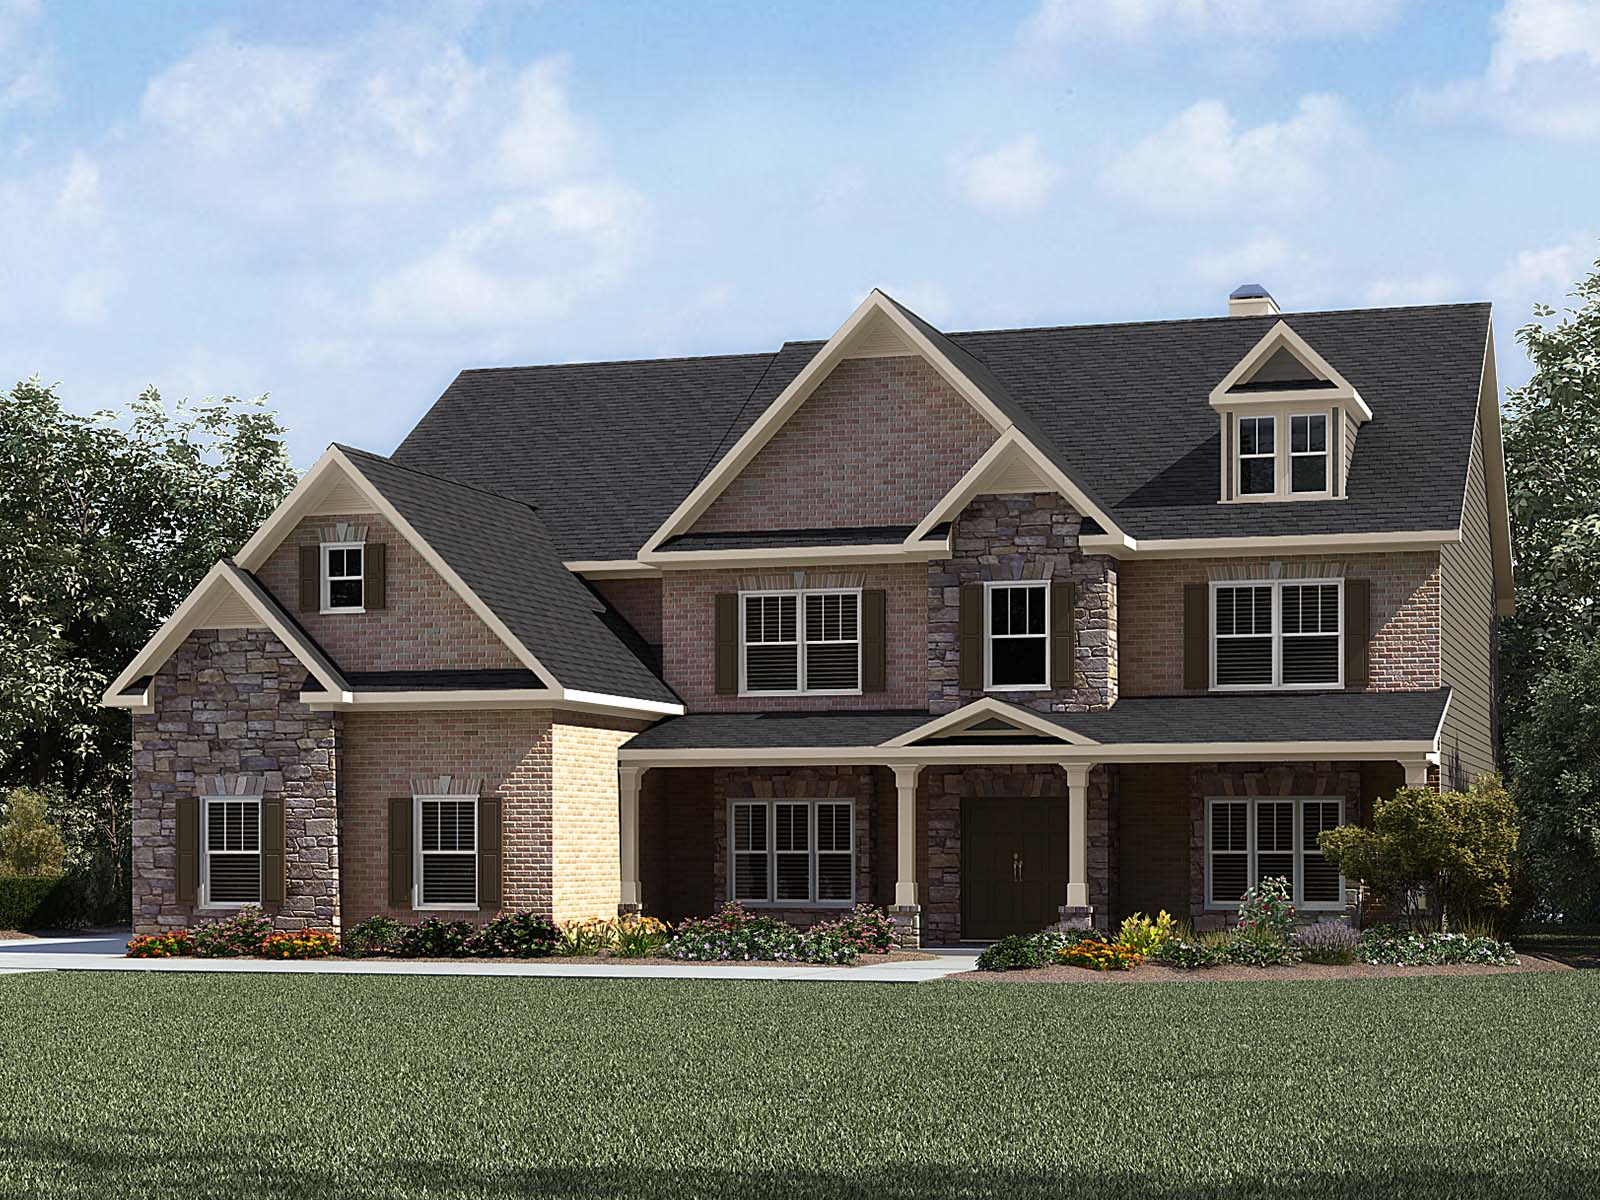 Chatsworth Model 5br 5ba Homes For Sale In Greer Sc